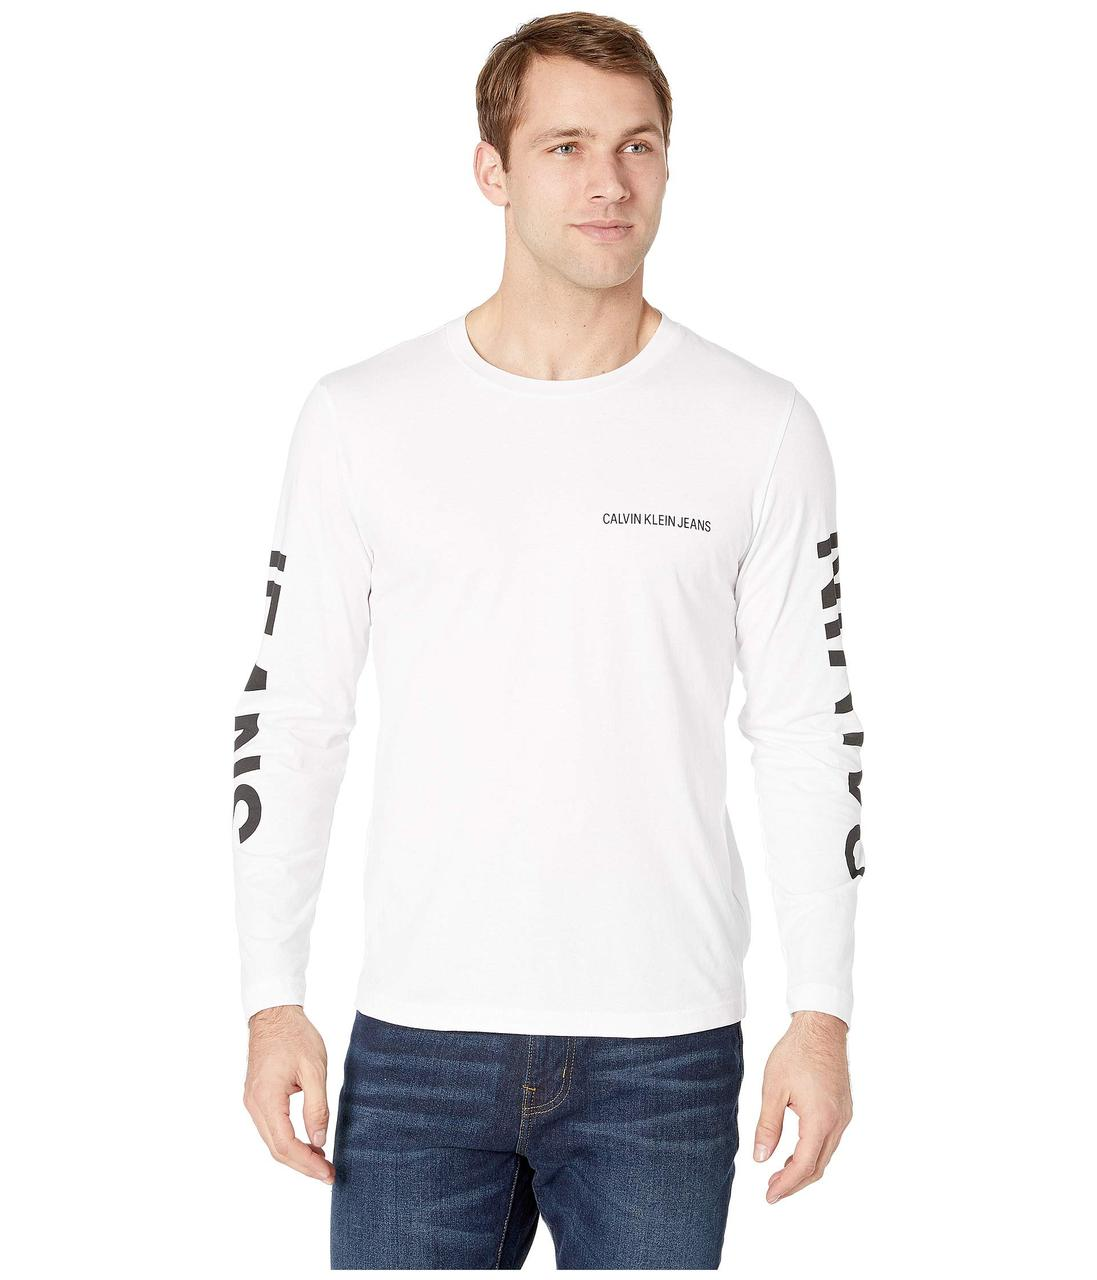 0a9105950d263 Футболка Calvin Klein Jeans Institutional Logo Back Print Long Sleeve  White, (10150394)